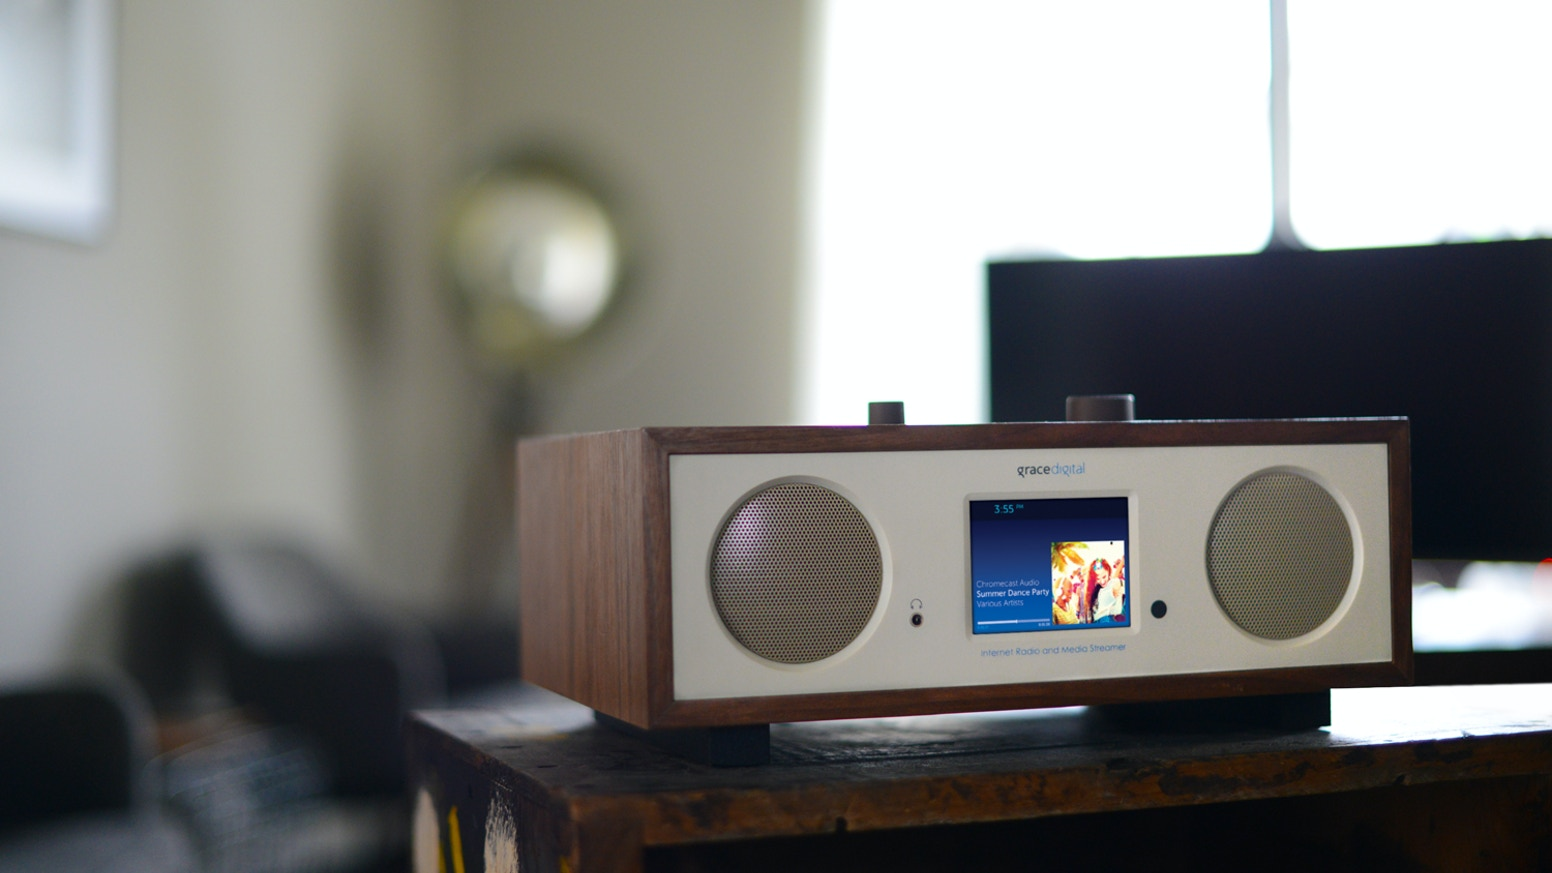 We developed a multi-function speaker/radio. It's a Wi-Fi speaker, with Chromecast built-in, Bluetooth, and an internet radio combined.